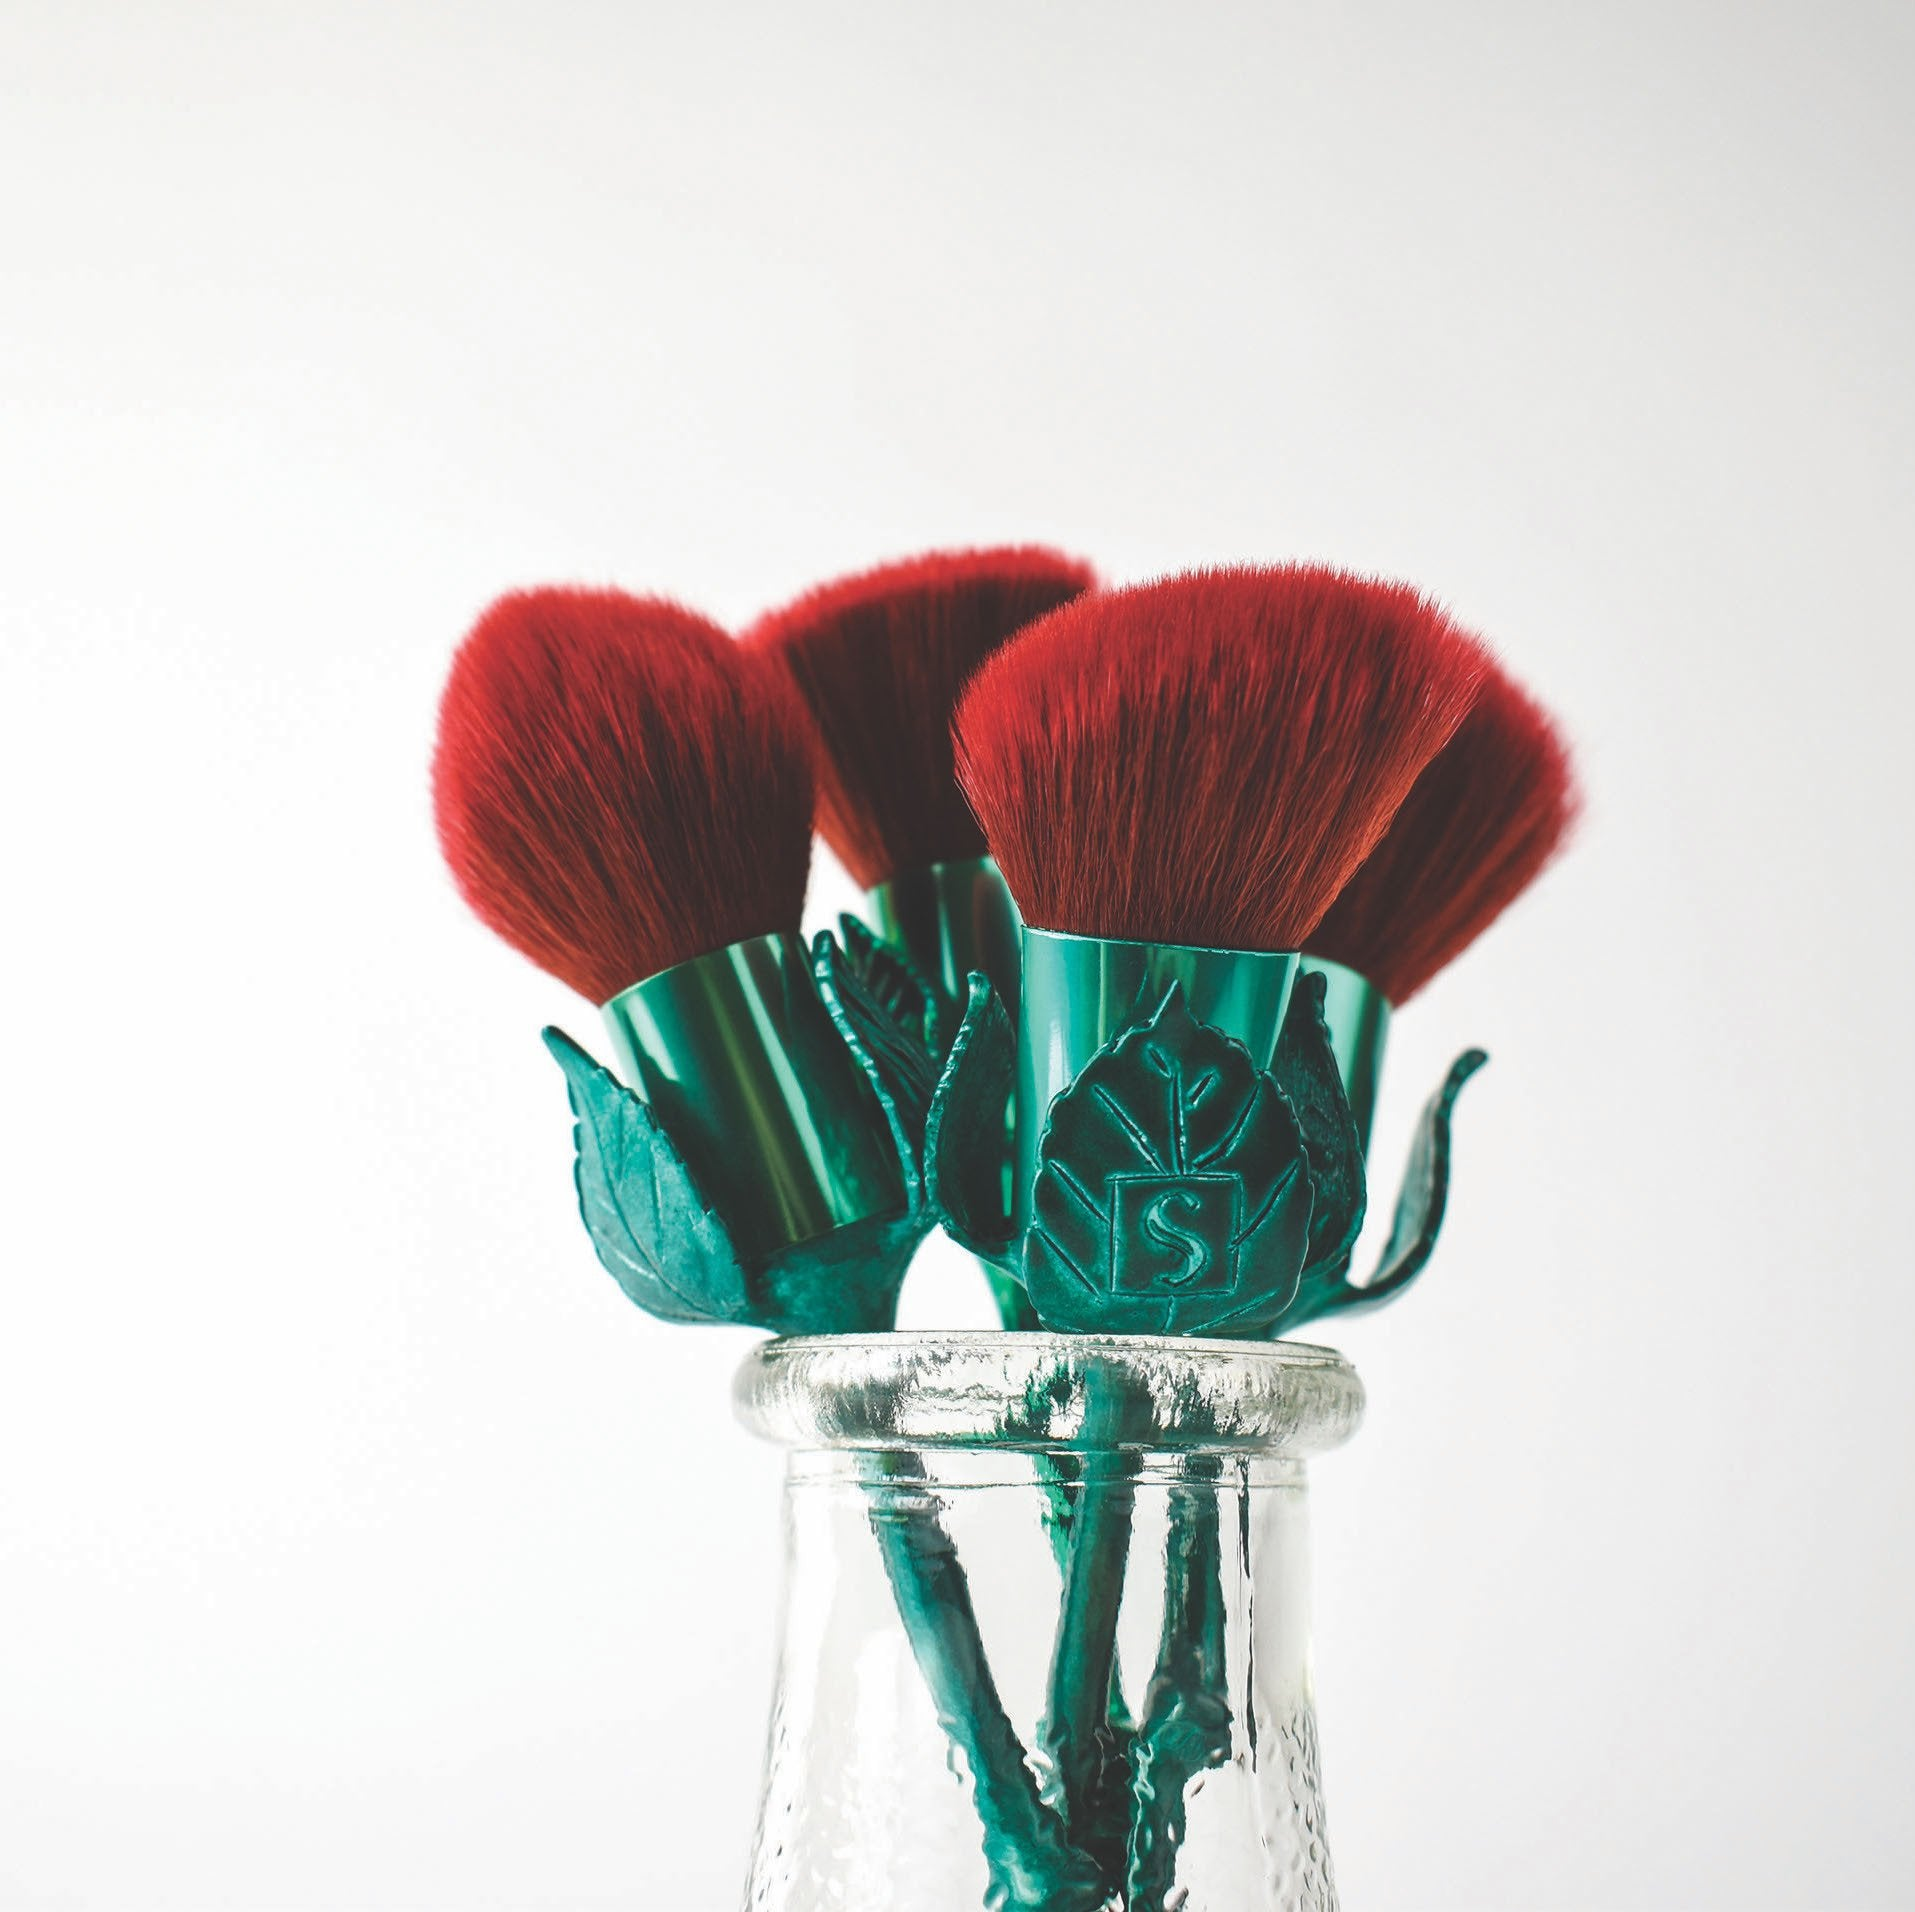 Storybook Cosmetics - What's in a Name Rose Brushes